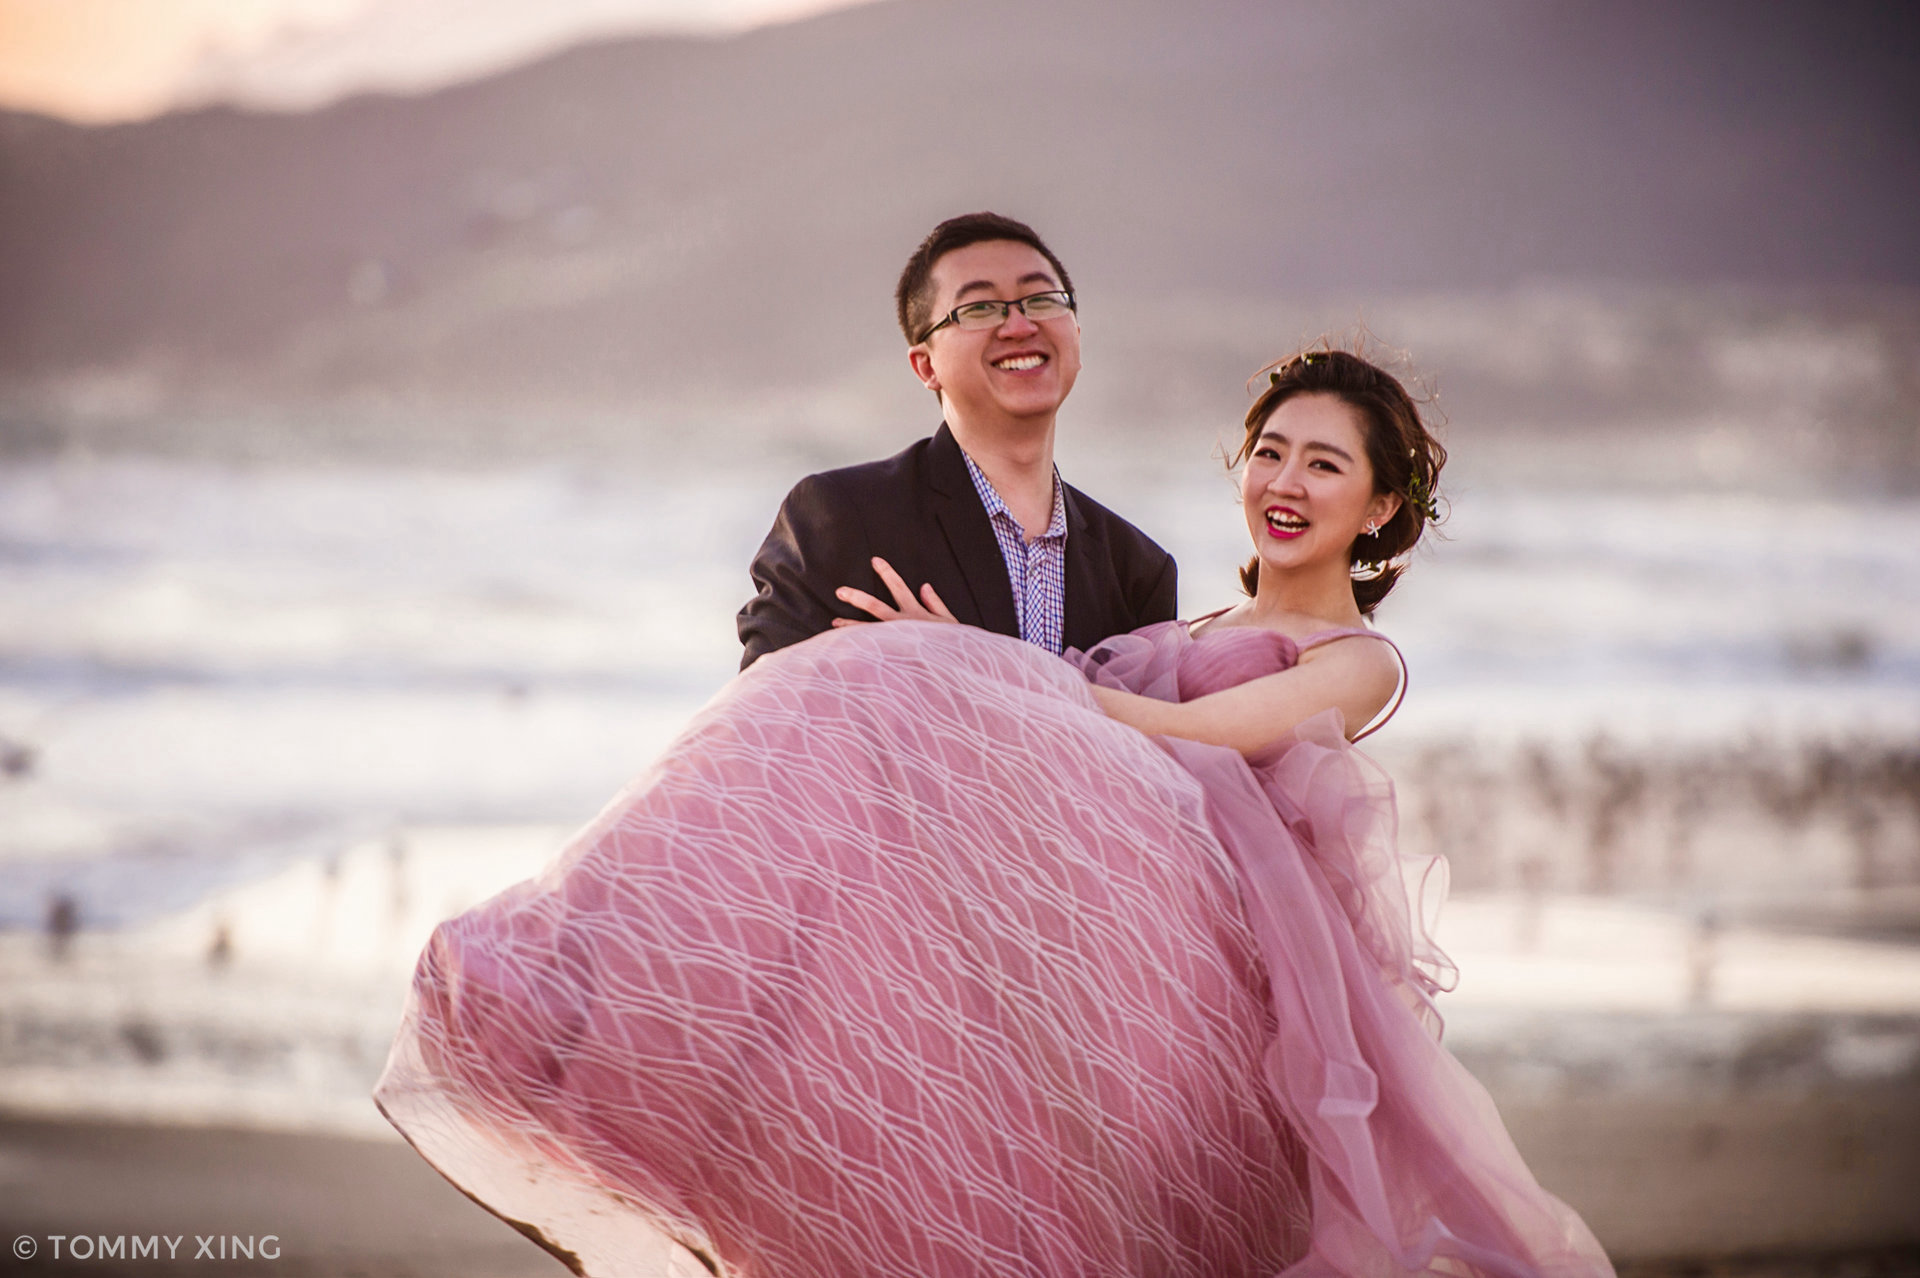 旧金山洛杉矶婚纱照 Tommy Xing Wedding Photography 25.jpg